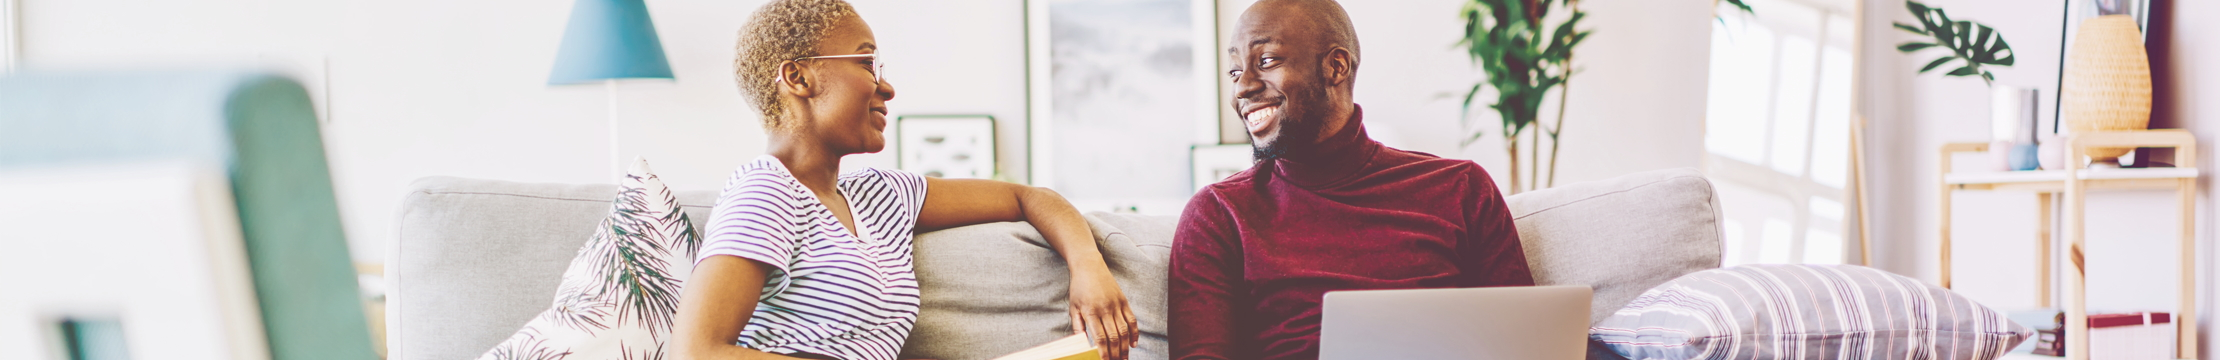 A smiling man sits on the sofa with his wife